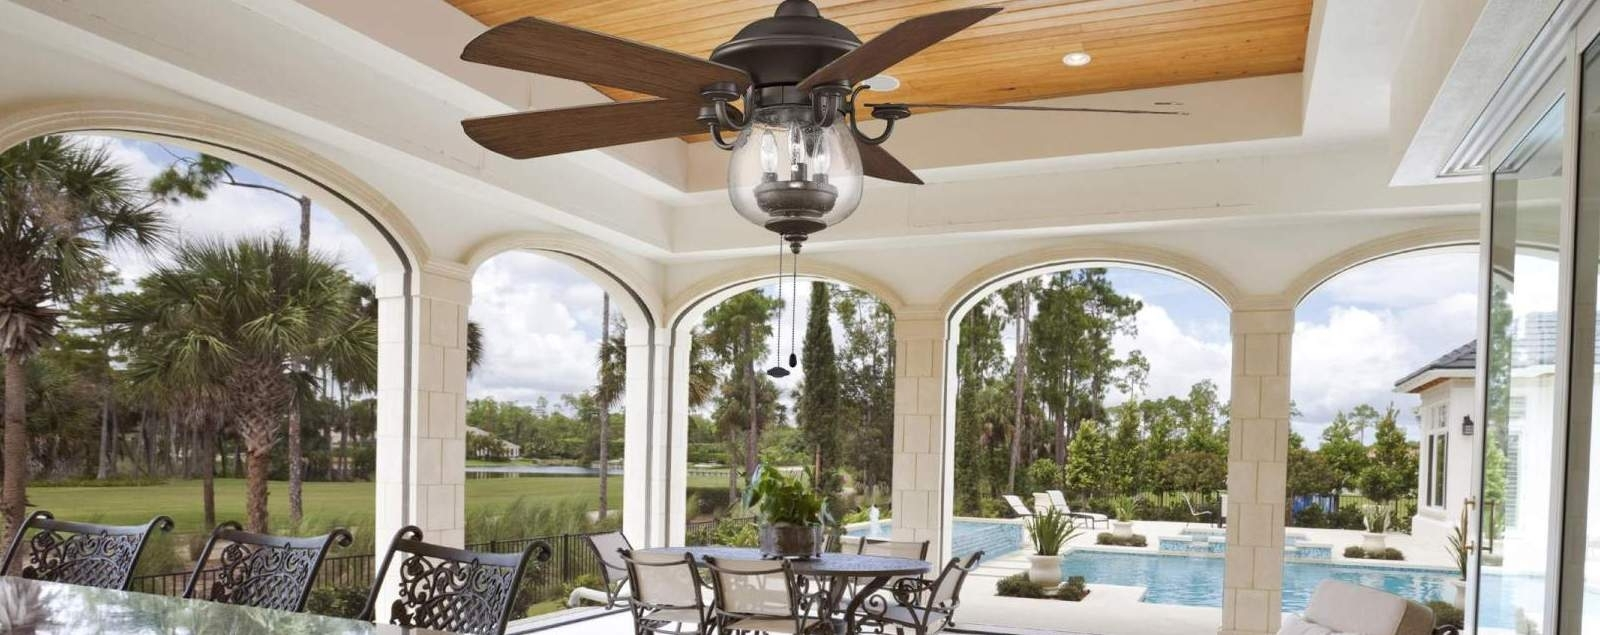 Outdoor Rated Ceiling Fans With Lights With Current Outdoor Ceiling Fans – Shop Wet, Dry, And Damp Rated Outdoor Fans (View 11 of 20)